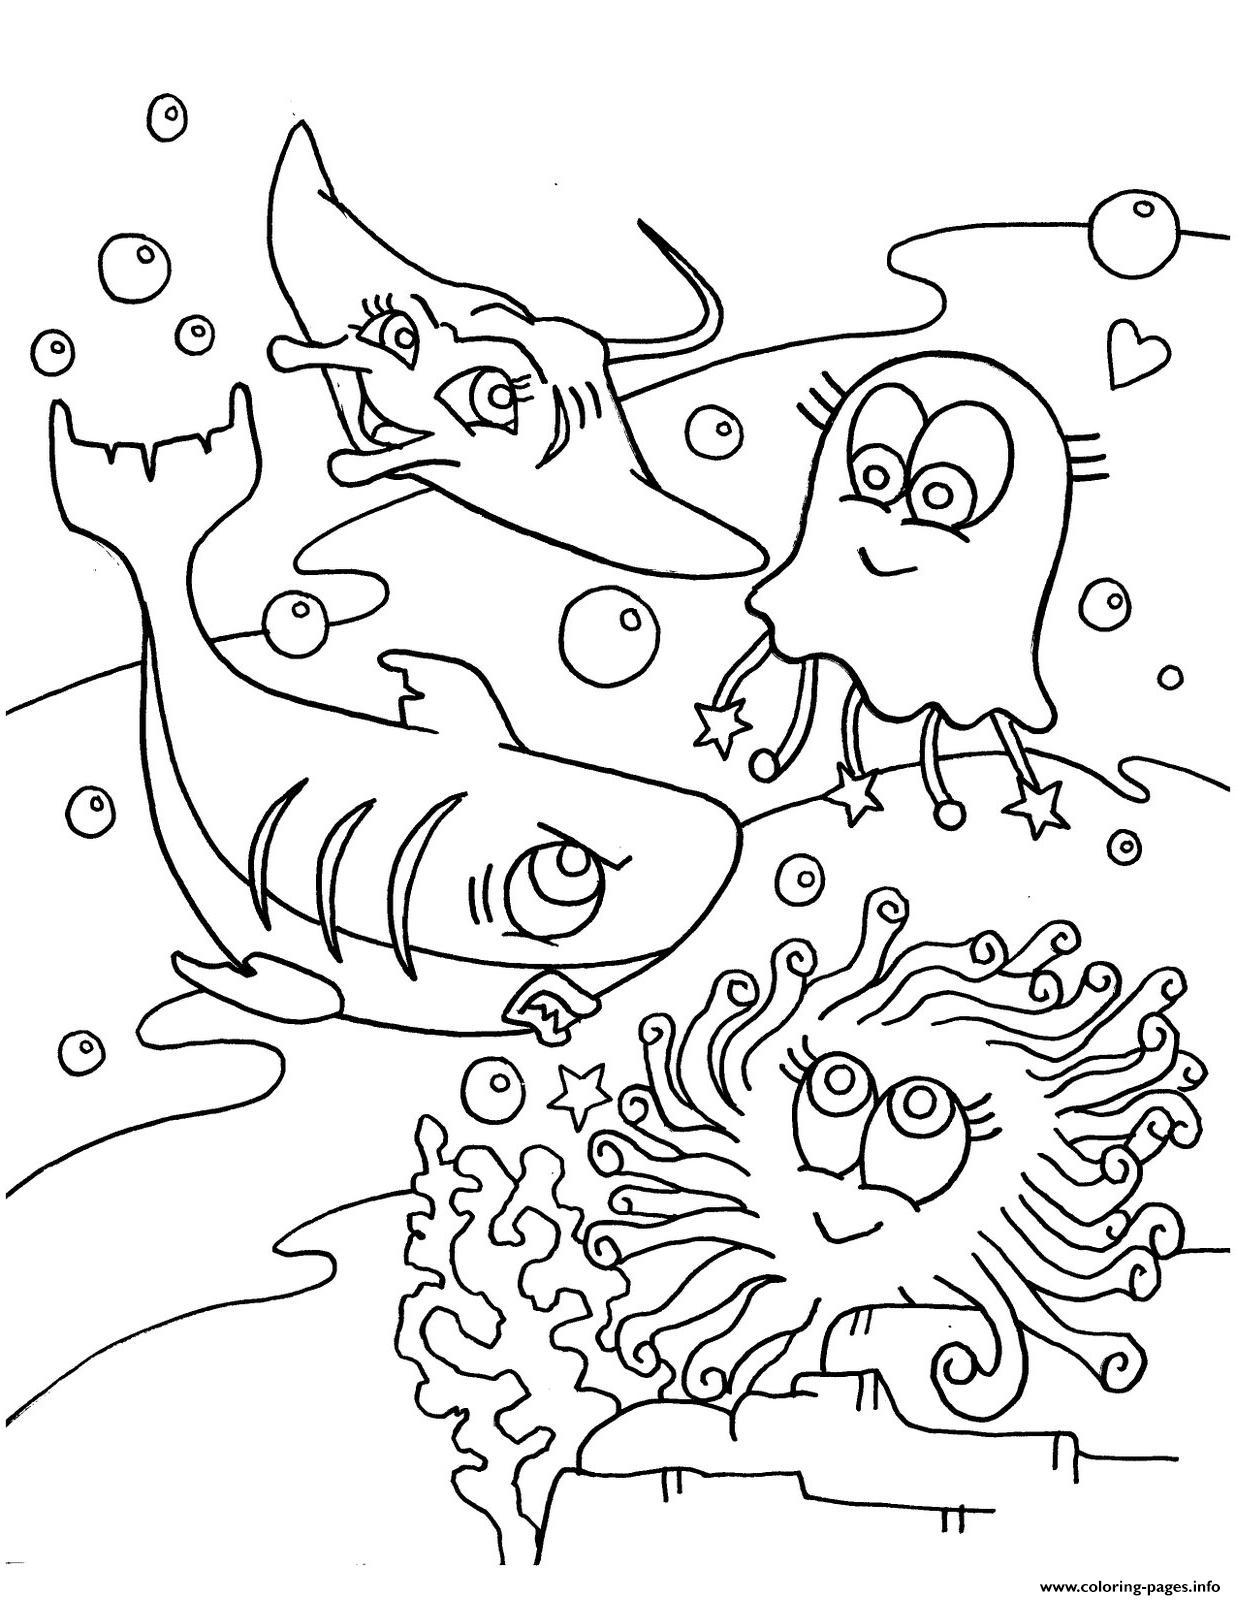 ocean animals printable coloring pages cute s of sea animals8e91 coloring pages printable pages animals coloring ocean printable